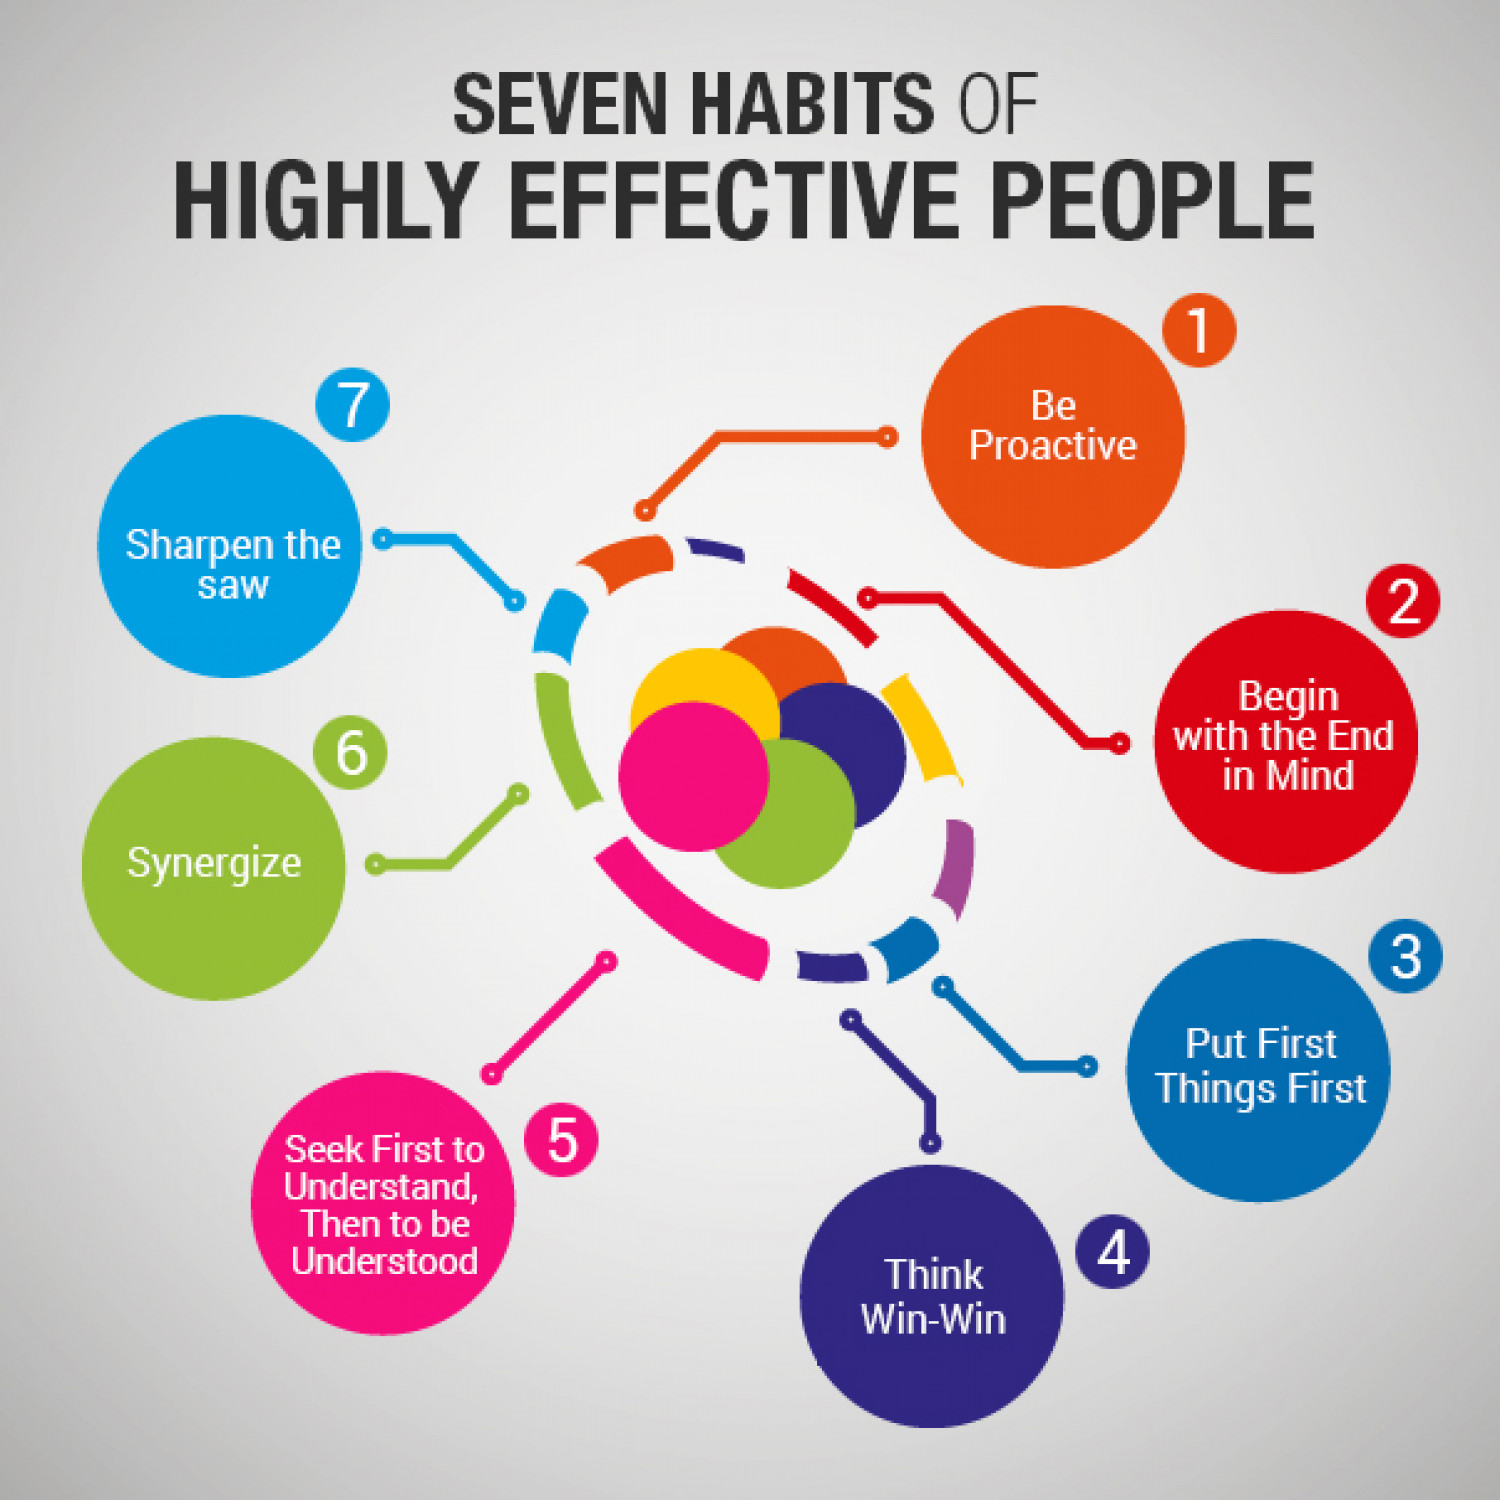 3 Of The 7 Habits Of Highly Effective People